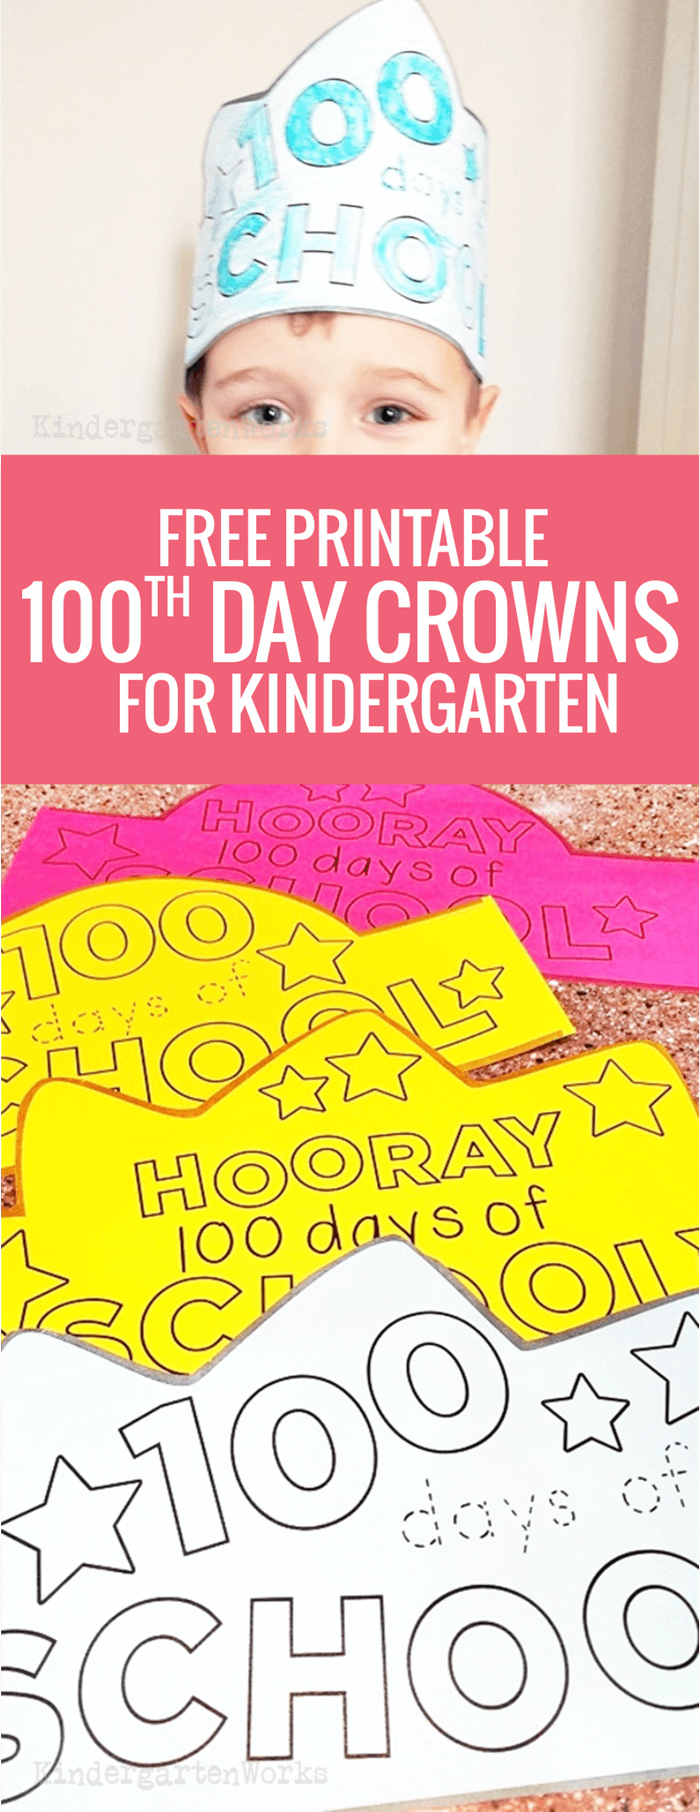 free printable 100th day of school crowns headbands for kindergarten